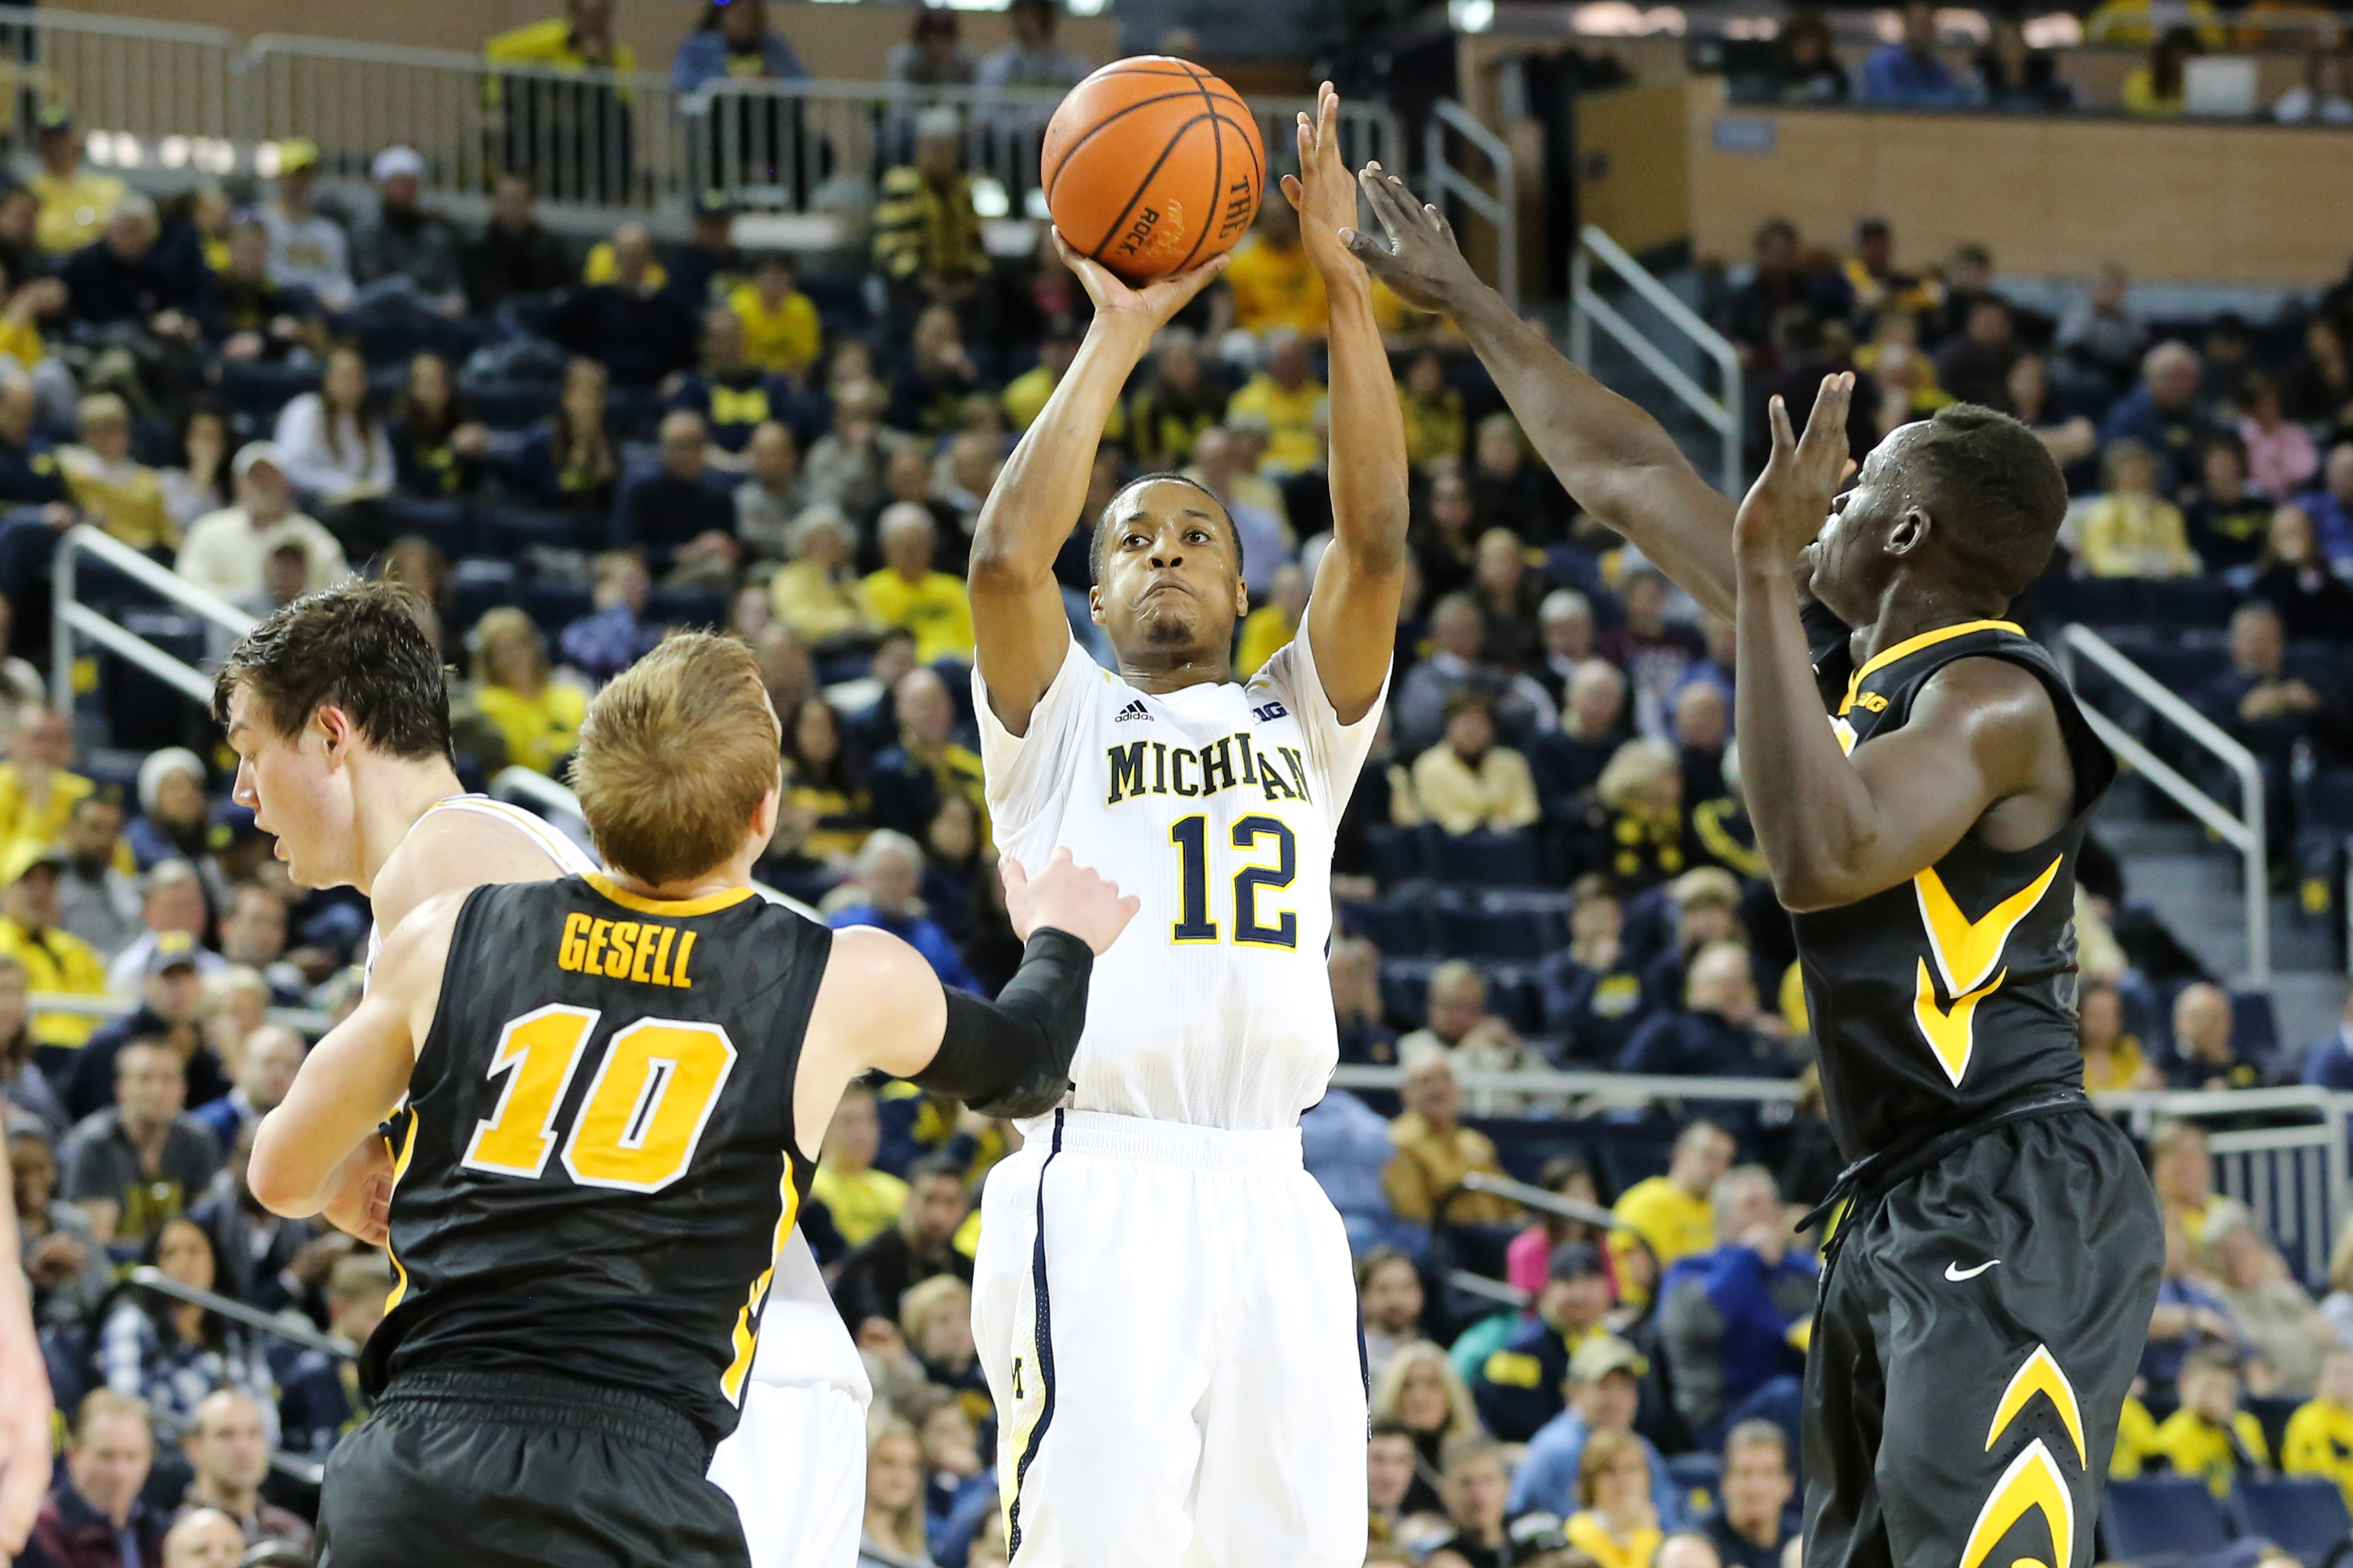 Michigan 54, Iowa 72-12